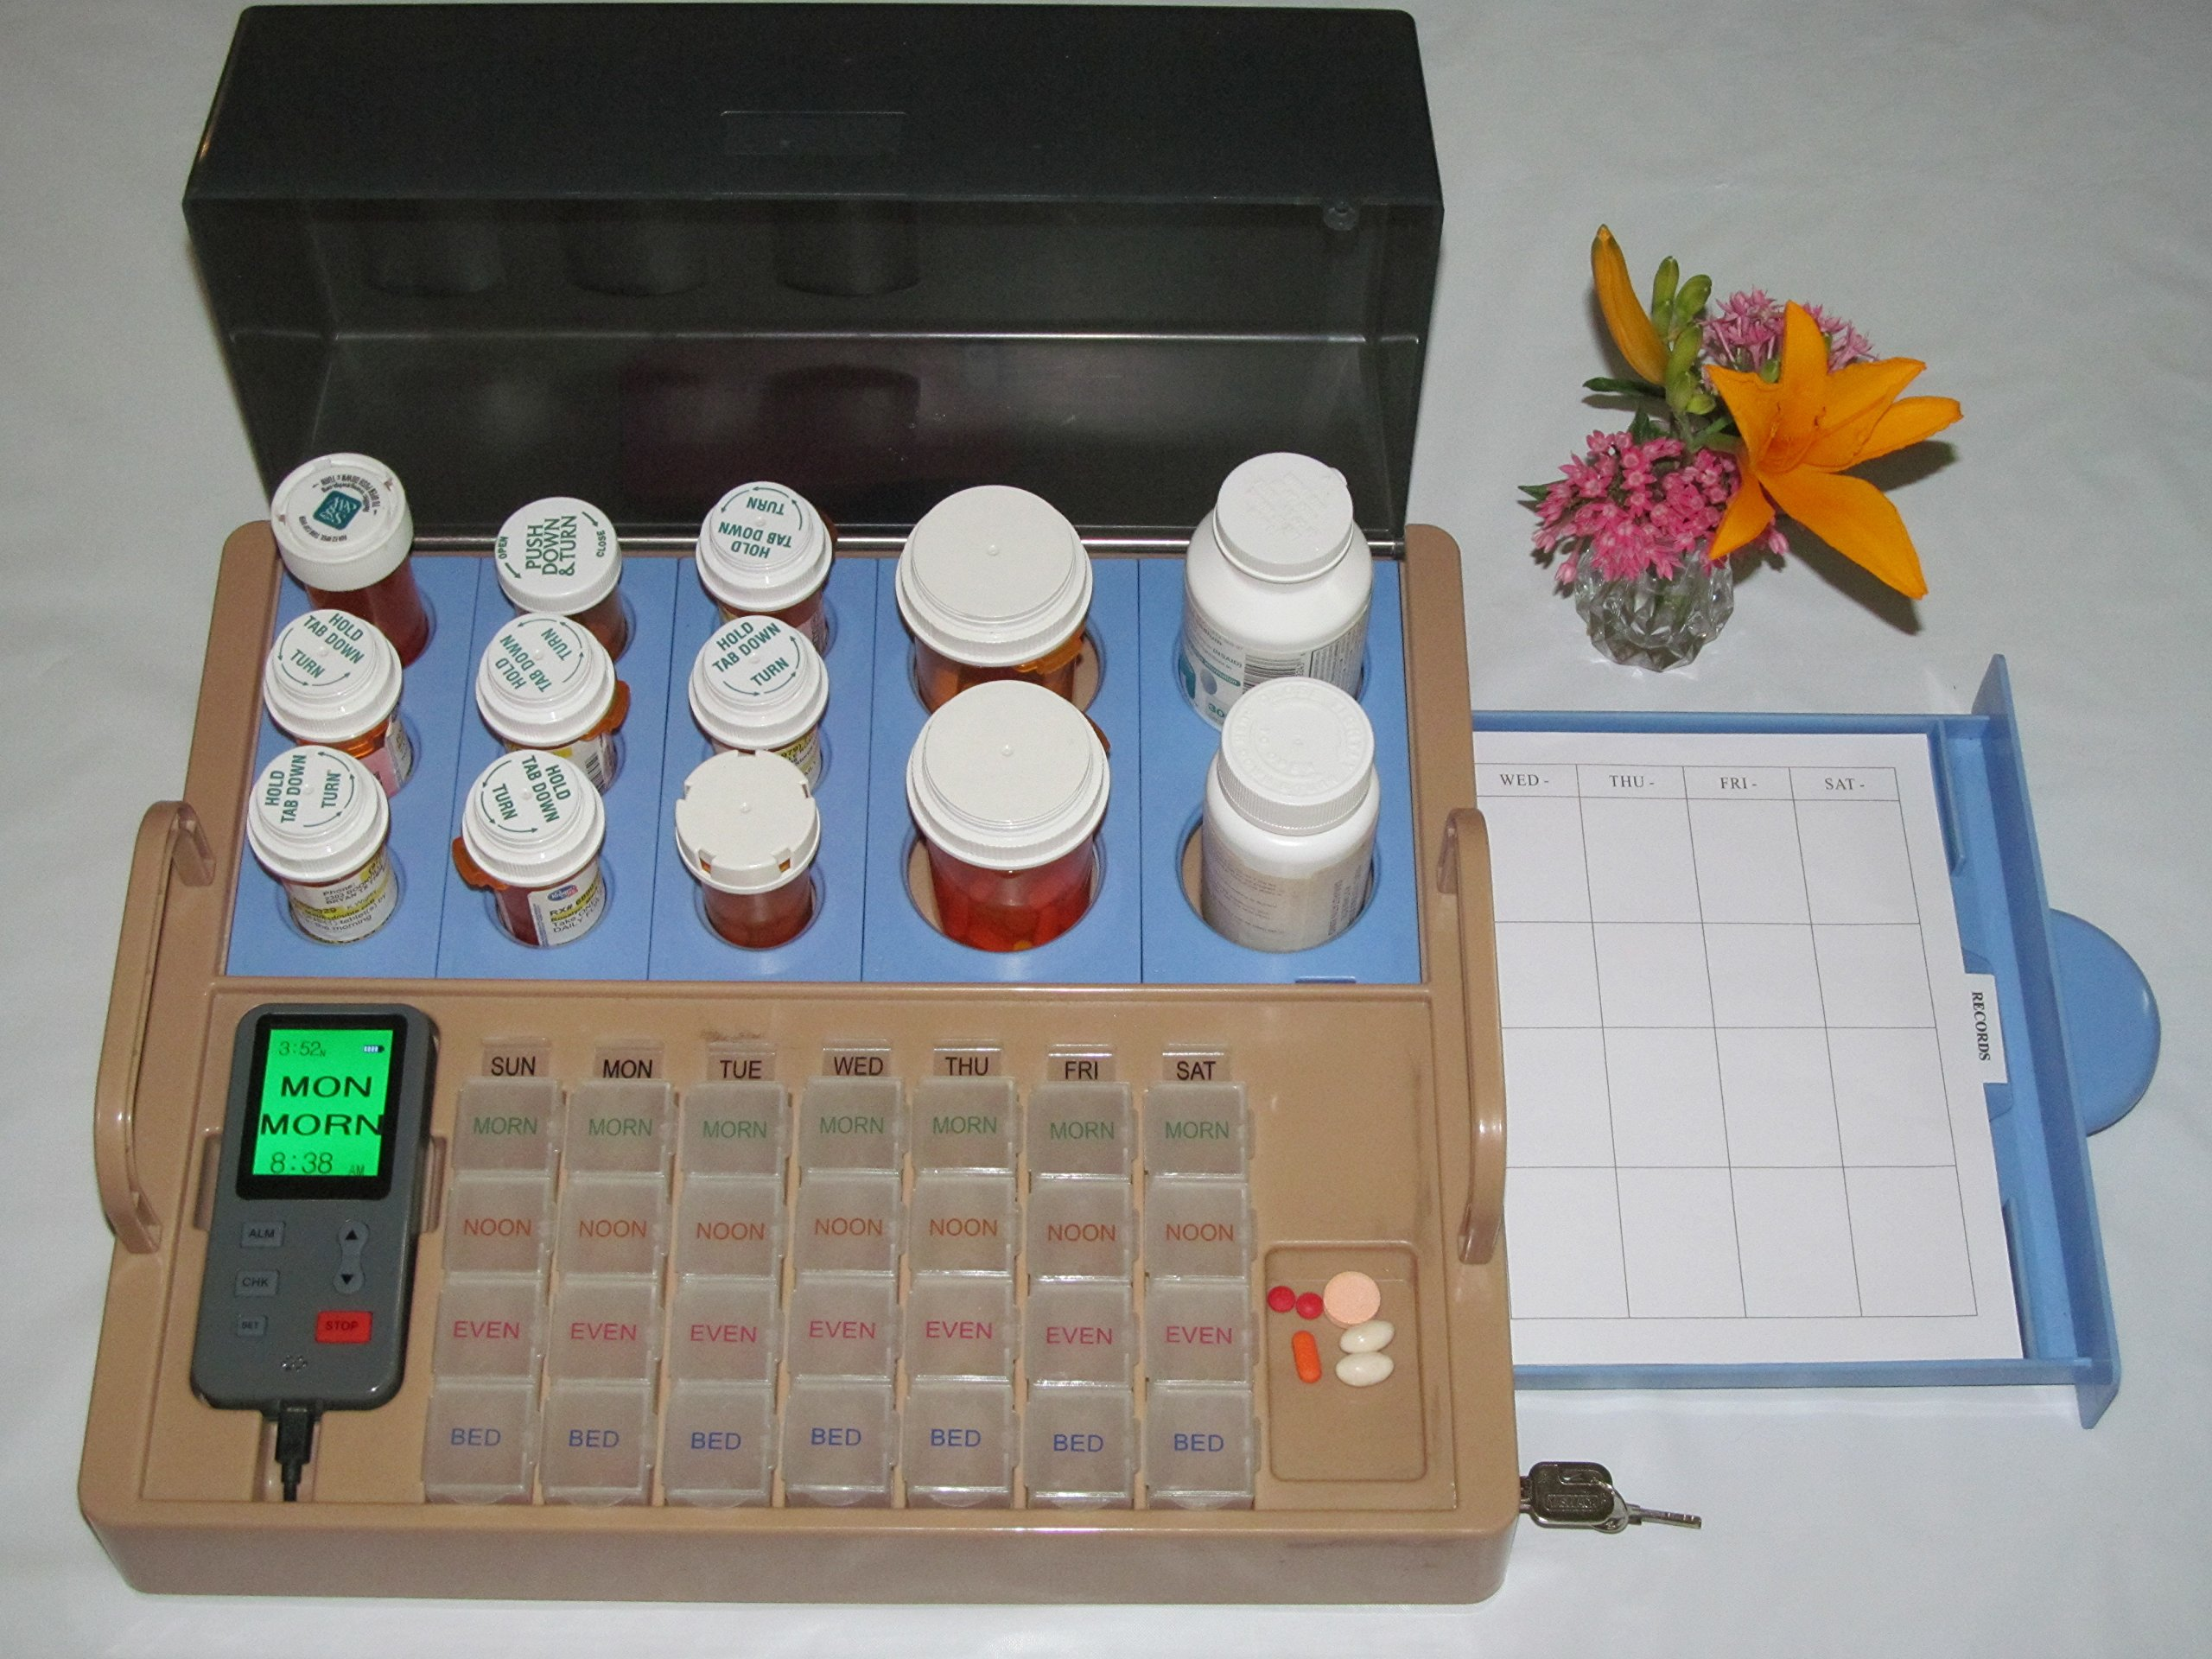 Home Med Station, A COMPLETE Medication System for Home: Medicine Organizer, Medication Dispenser, Digital Alarms (visual & audio), Color Coded Daily Pill Boxes, Lockable Storage, Communications